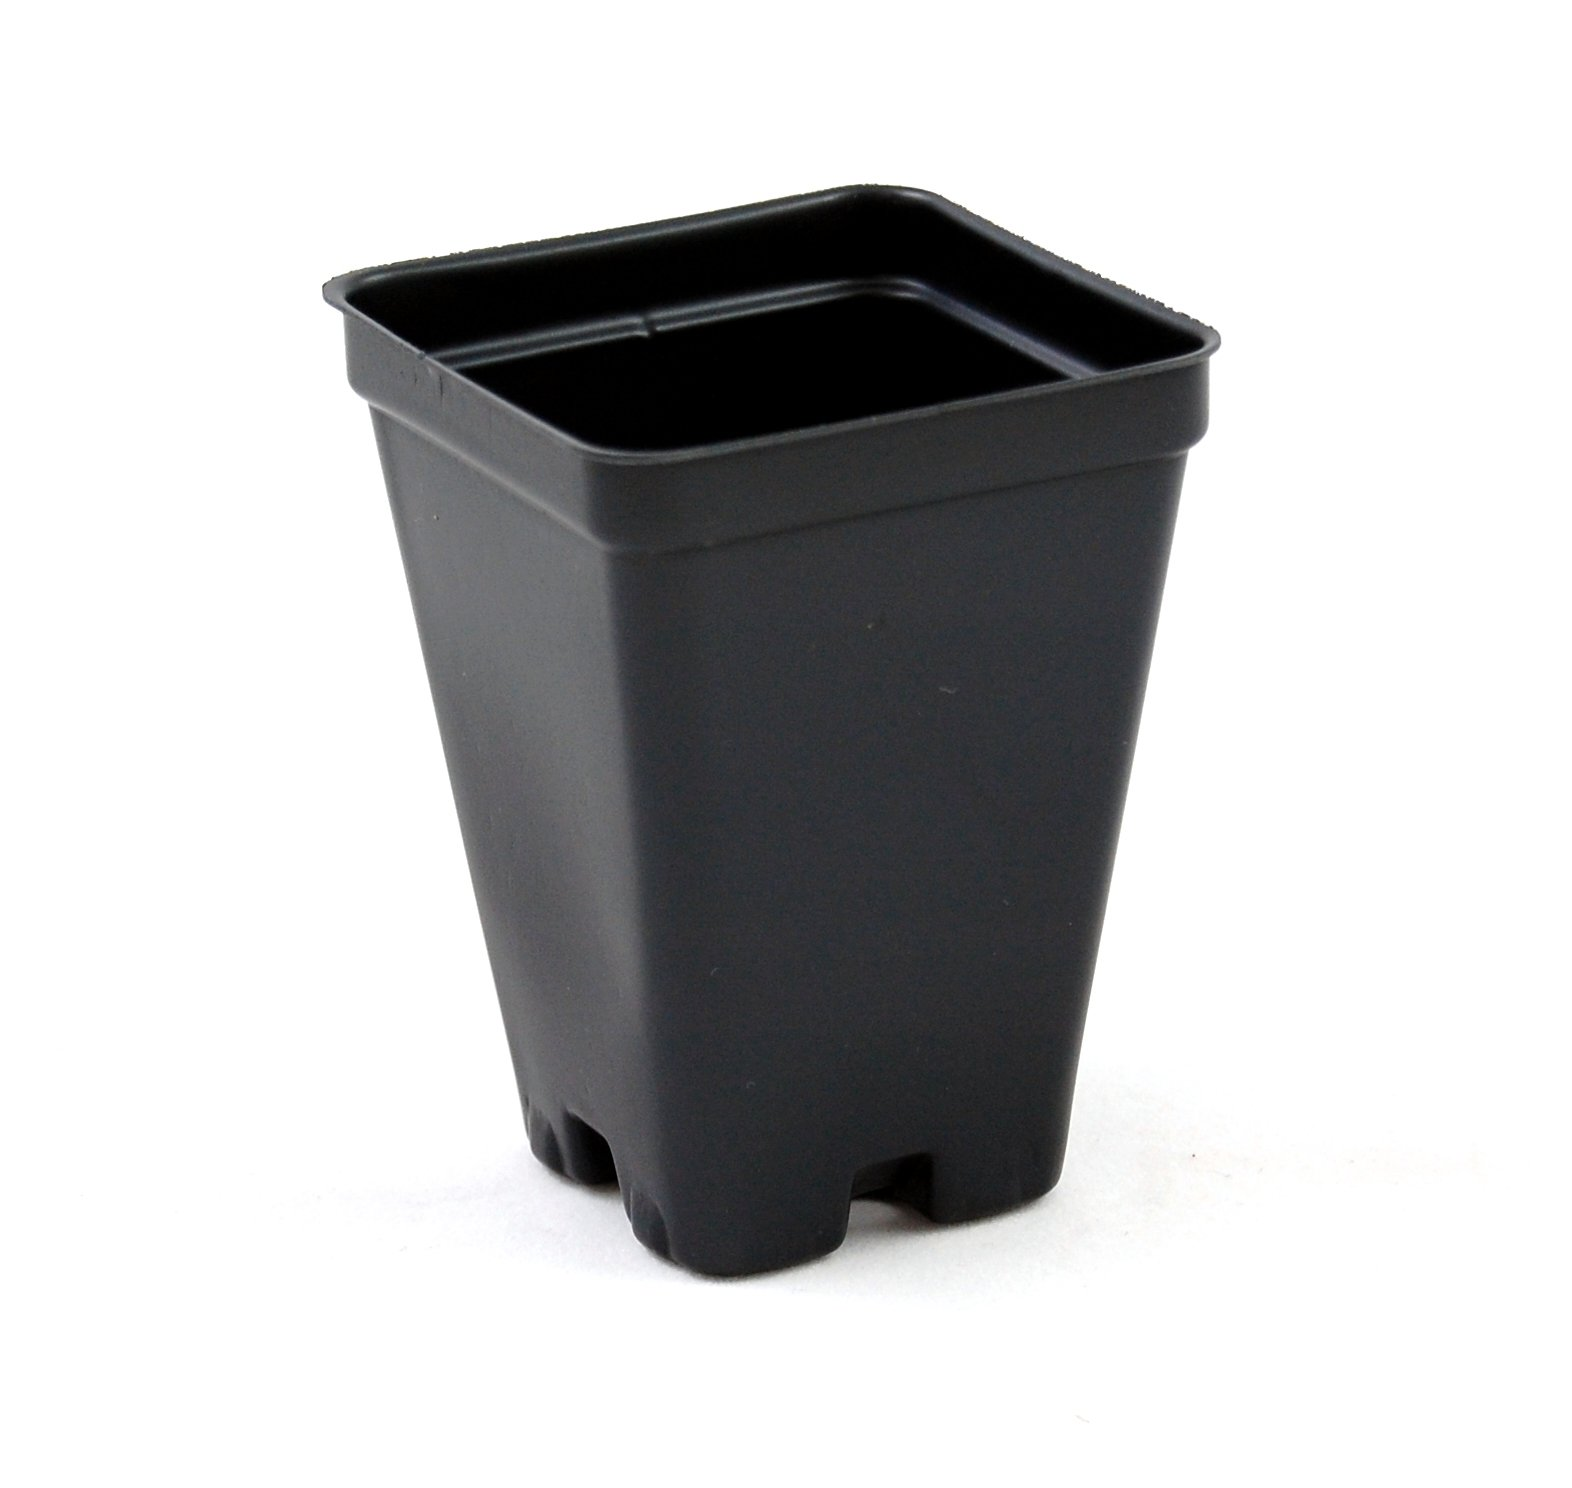 2.5 inch Square Greenhouse Pots - Black - Plastic - Deep - Case of 800 by Growers Solution